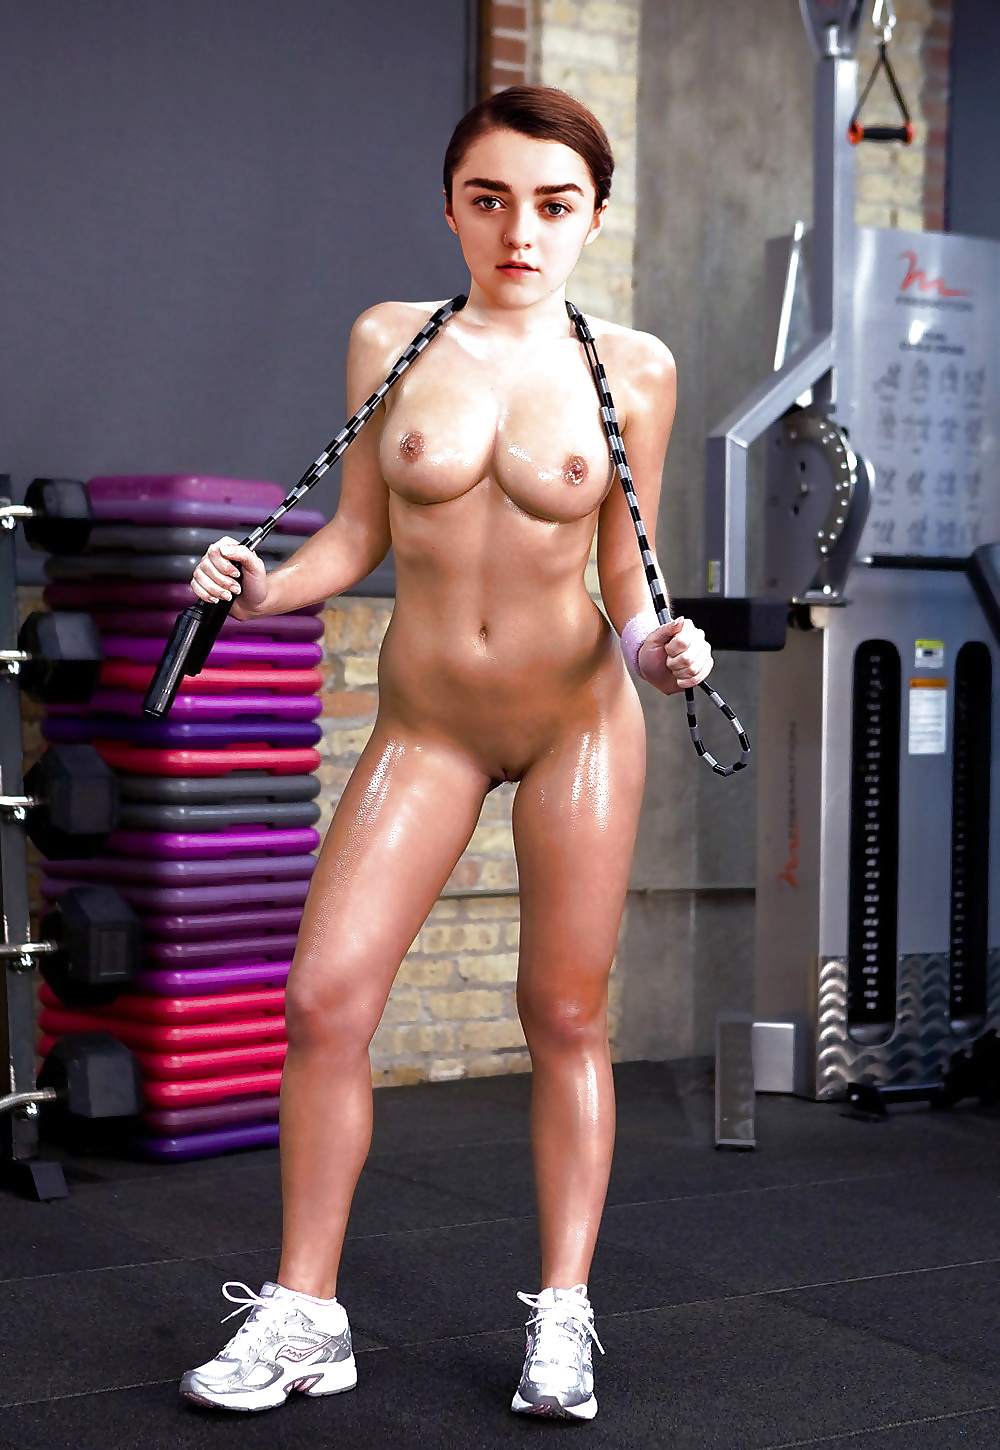 Teenage sluts topless naked gym girl